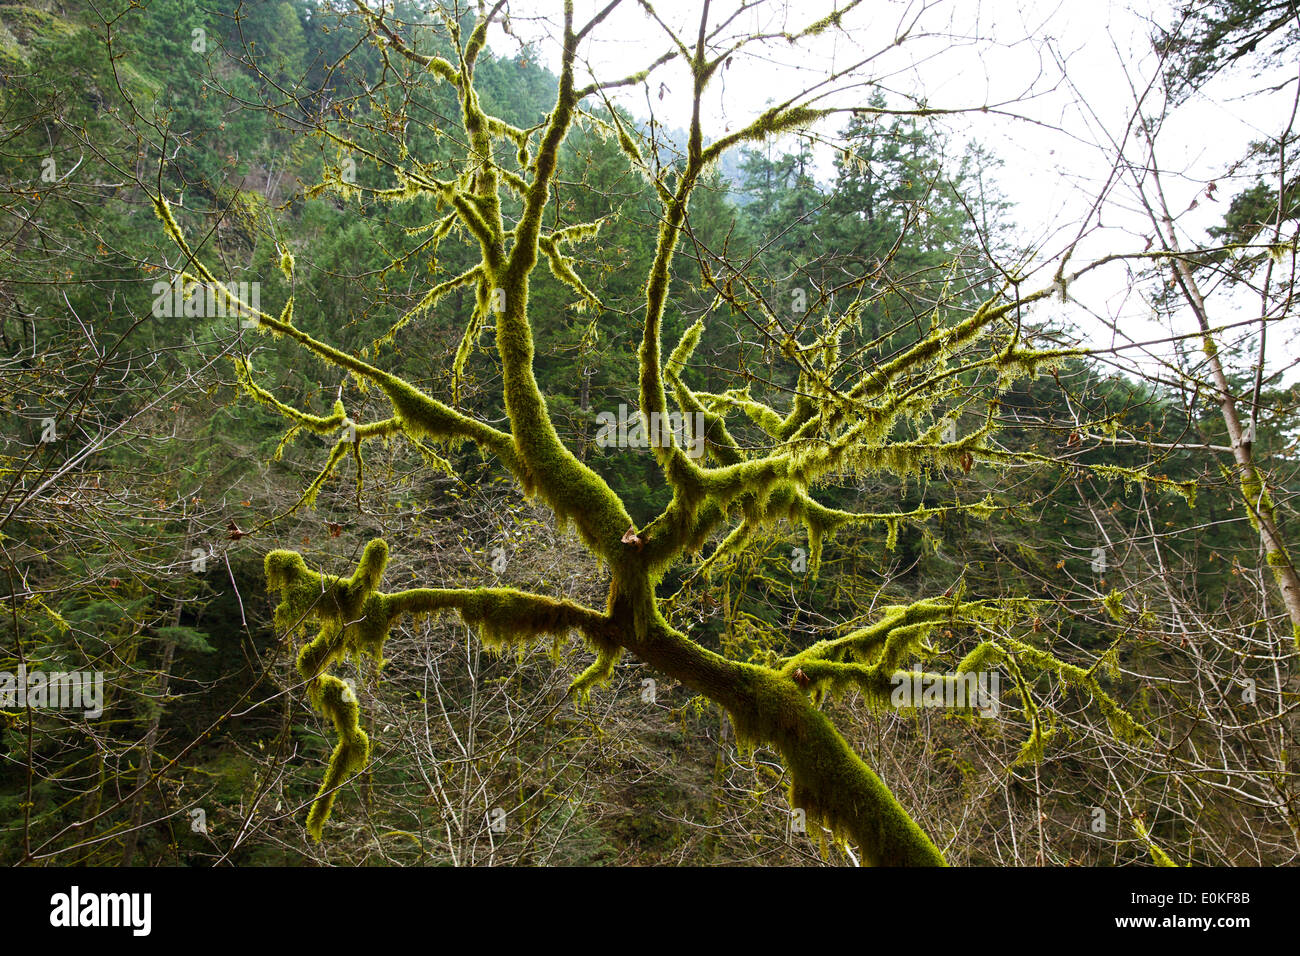 A moss covered branch on the trail to Wachlella Falls in Multnomah County, Oregon. - Stock Image